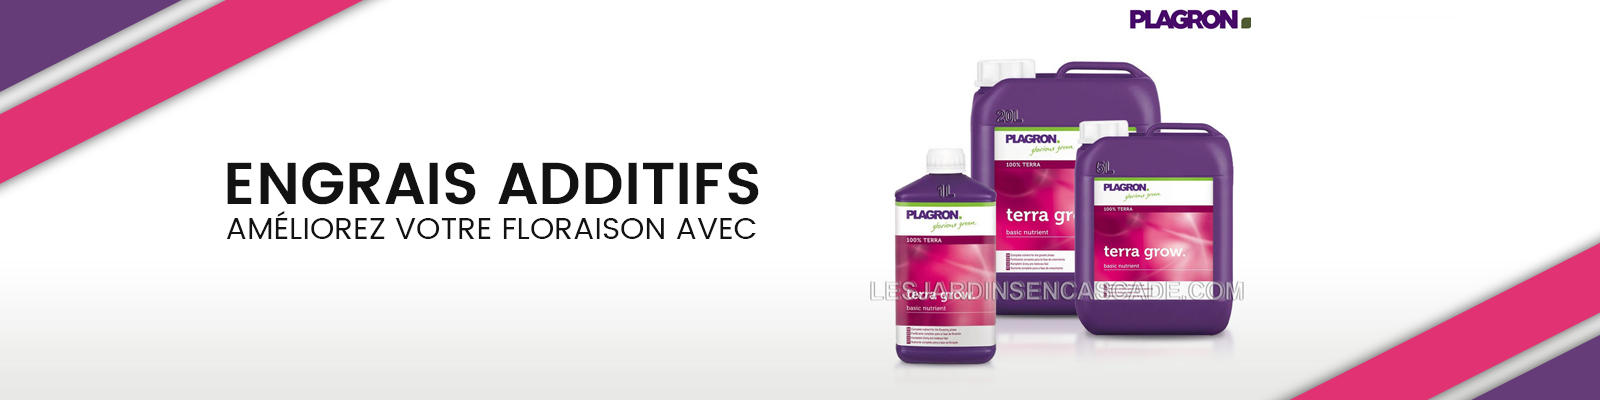 plagron-engrais-additifs